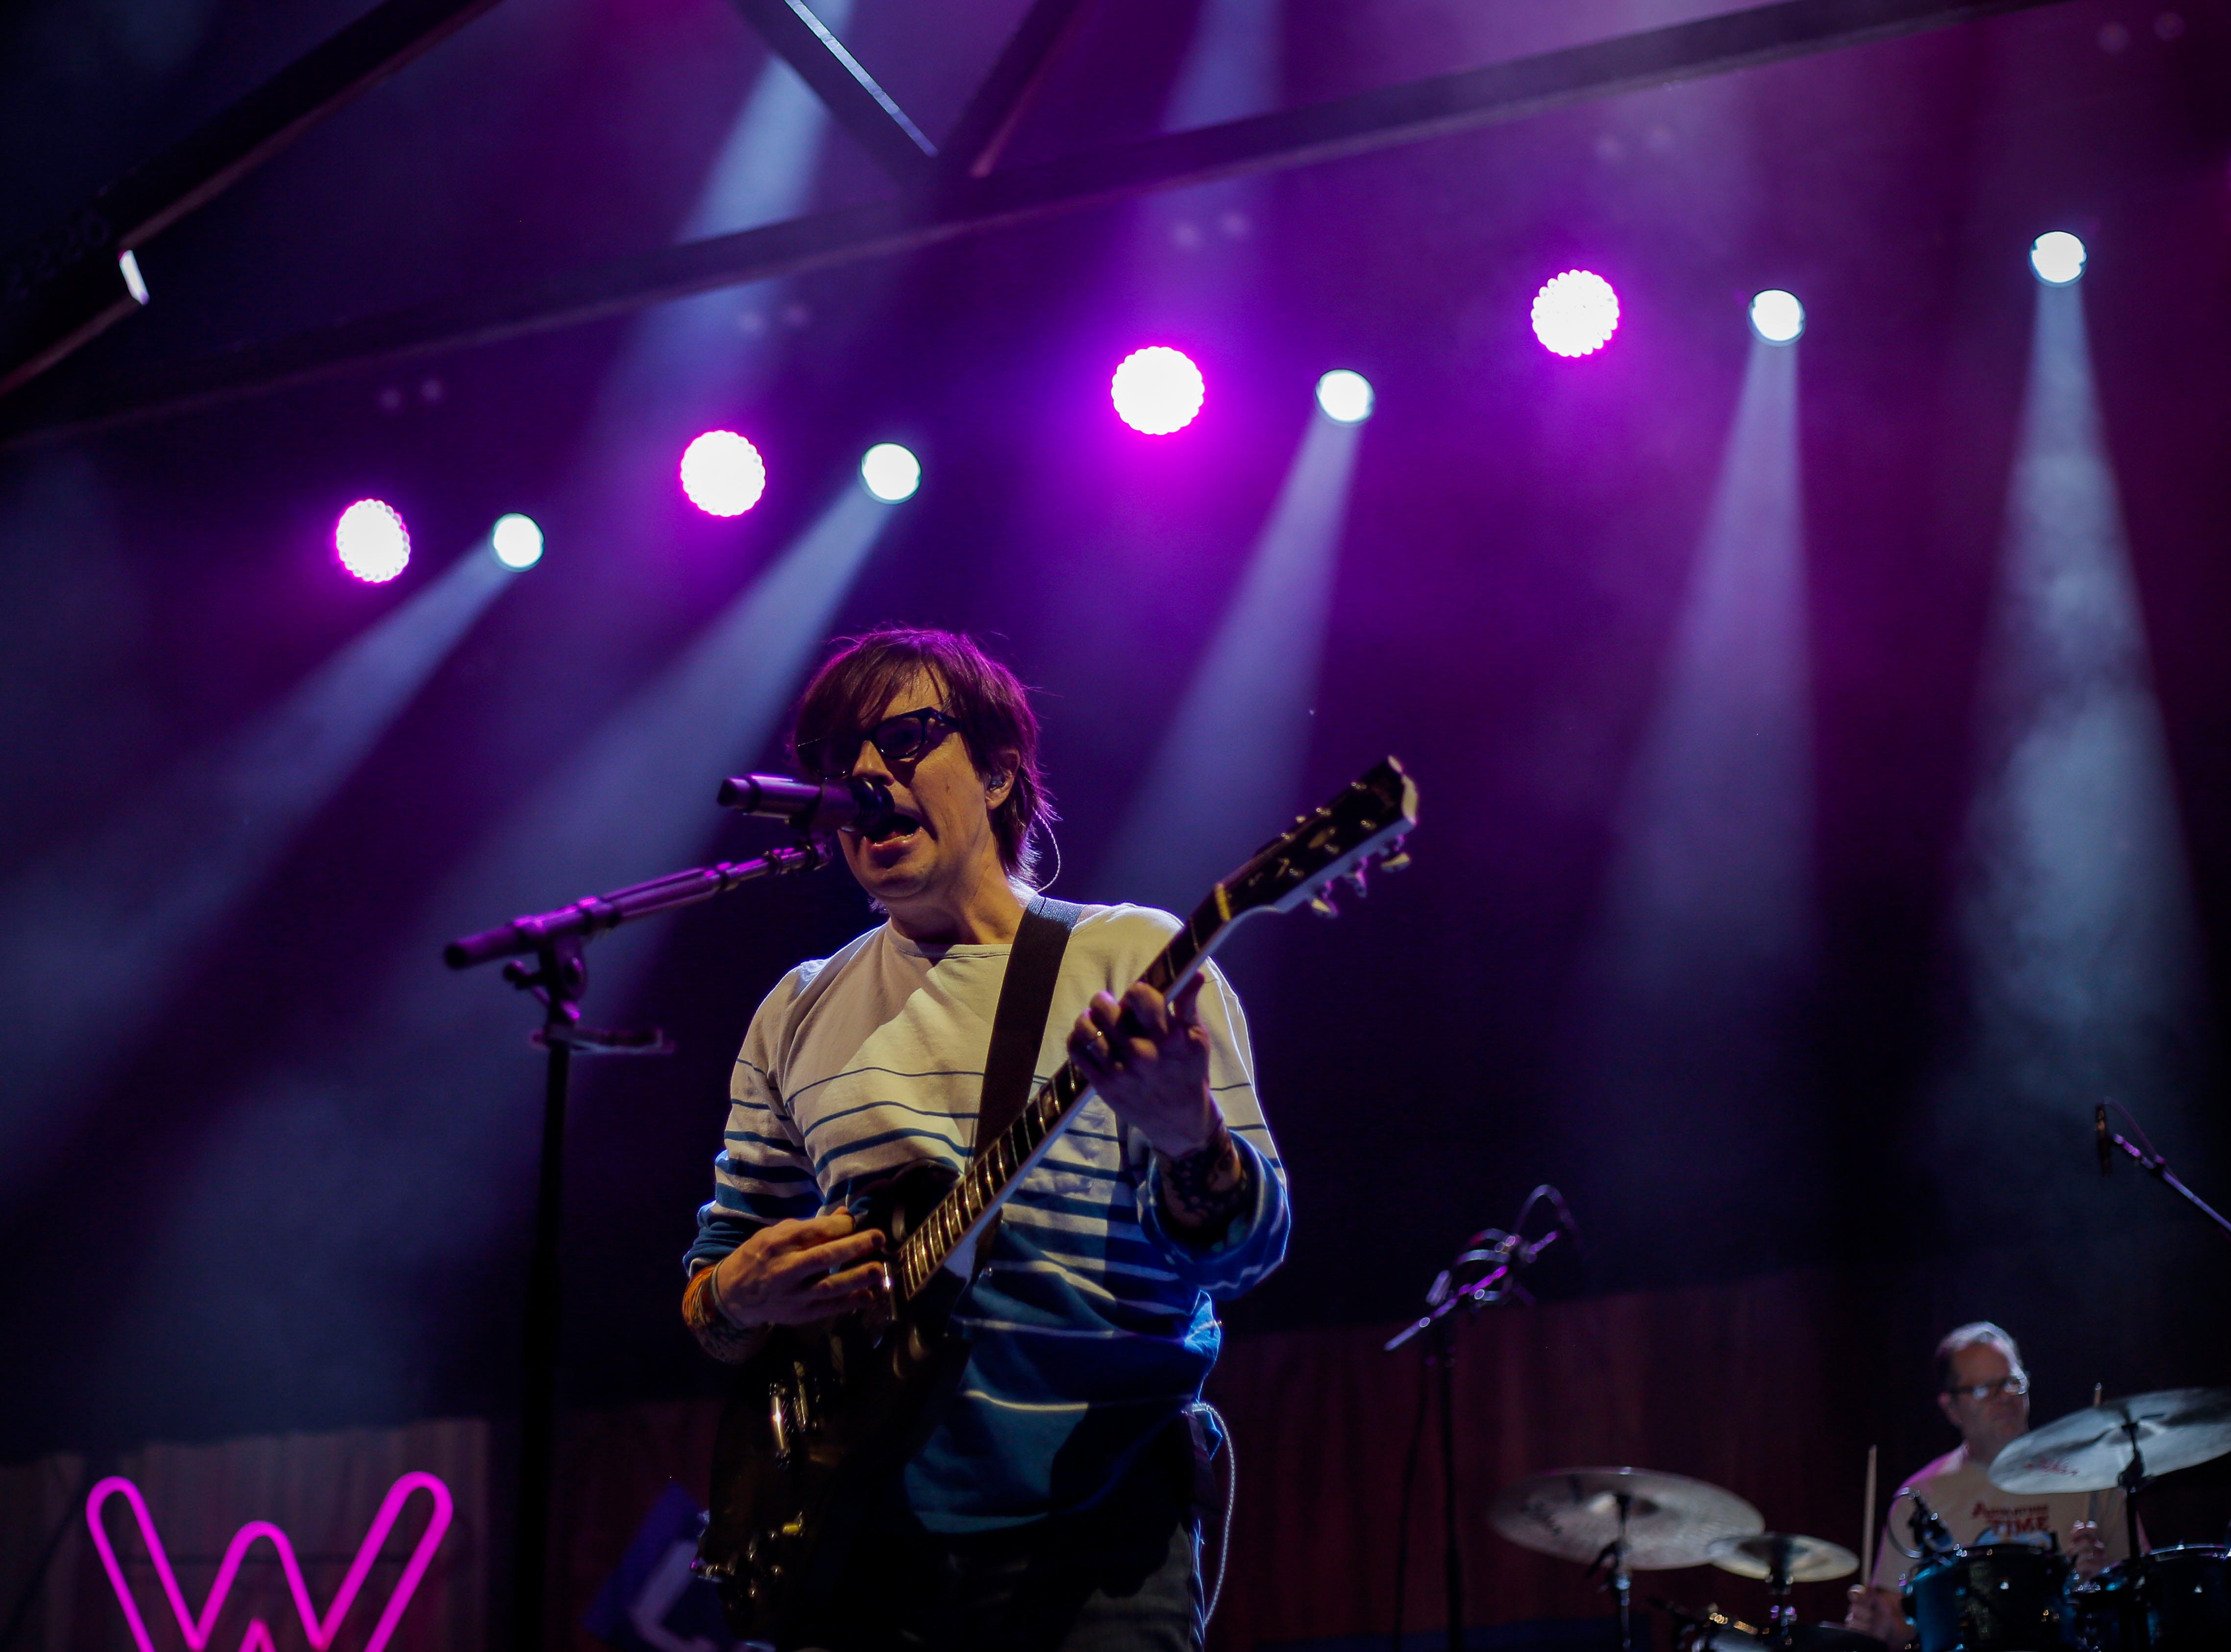 Rivers Cuomo, lead vocals and guitarist in Weezer, performs during the first show of the Weezer x Pixies 2019 tour at the KFC Yum! Center in downtown Louisville, Ky. on Friday, March 8, 2019.